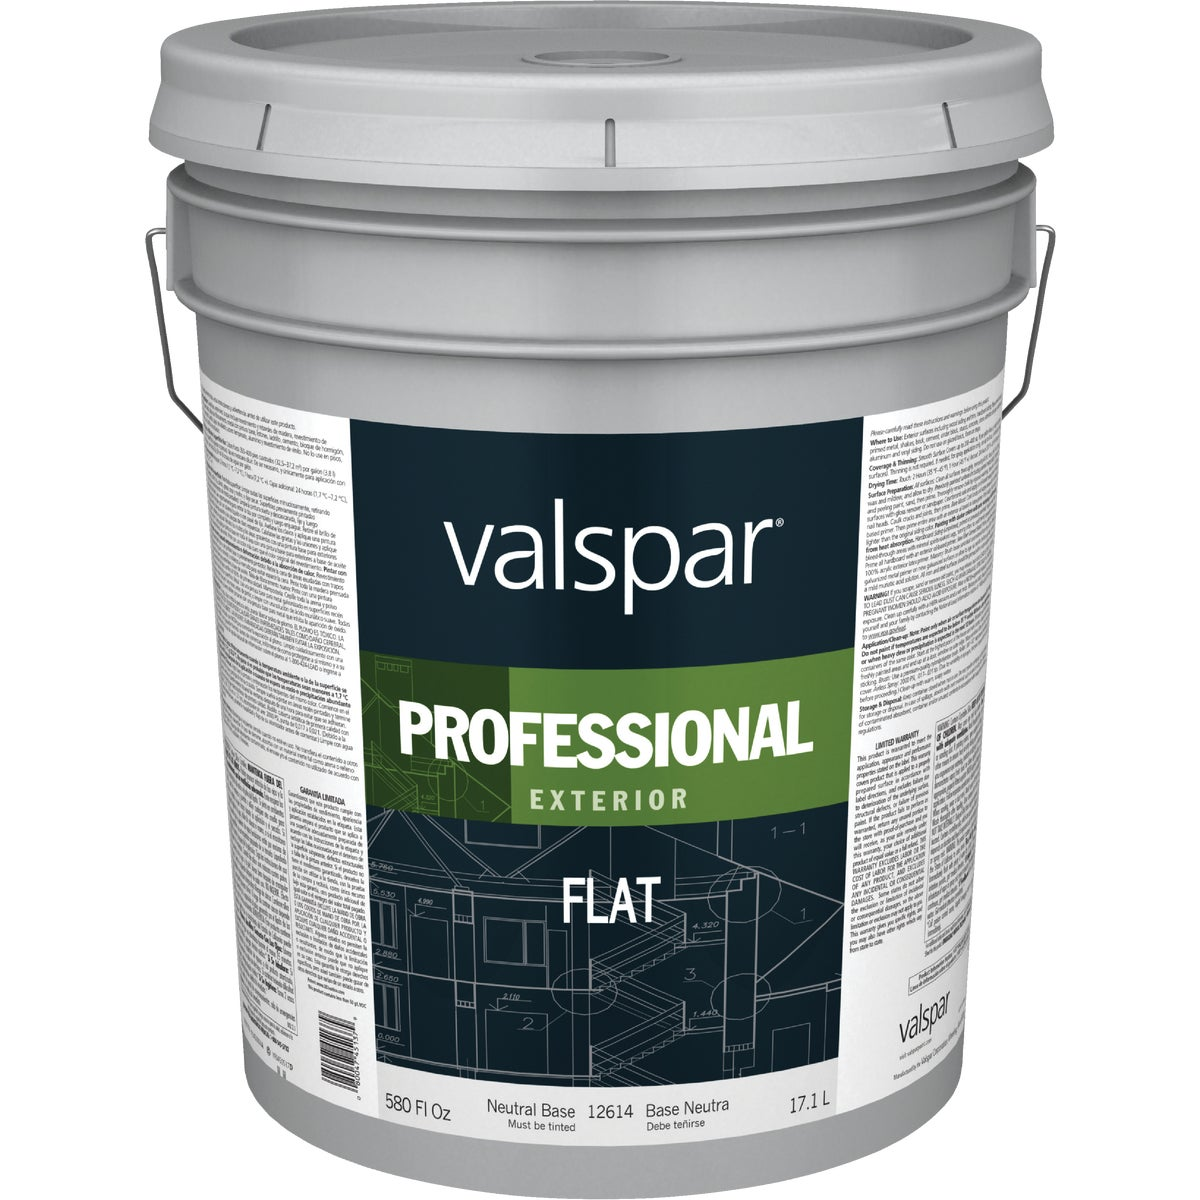 EXT FLAT NEUTRAL PAINT - 045.0012614.008 by Valspar Corp